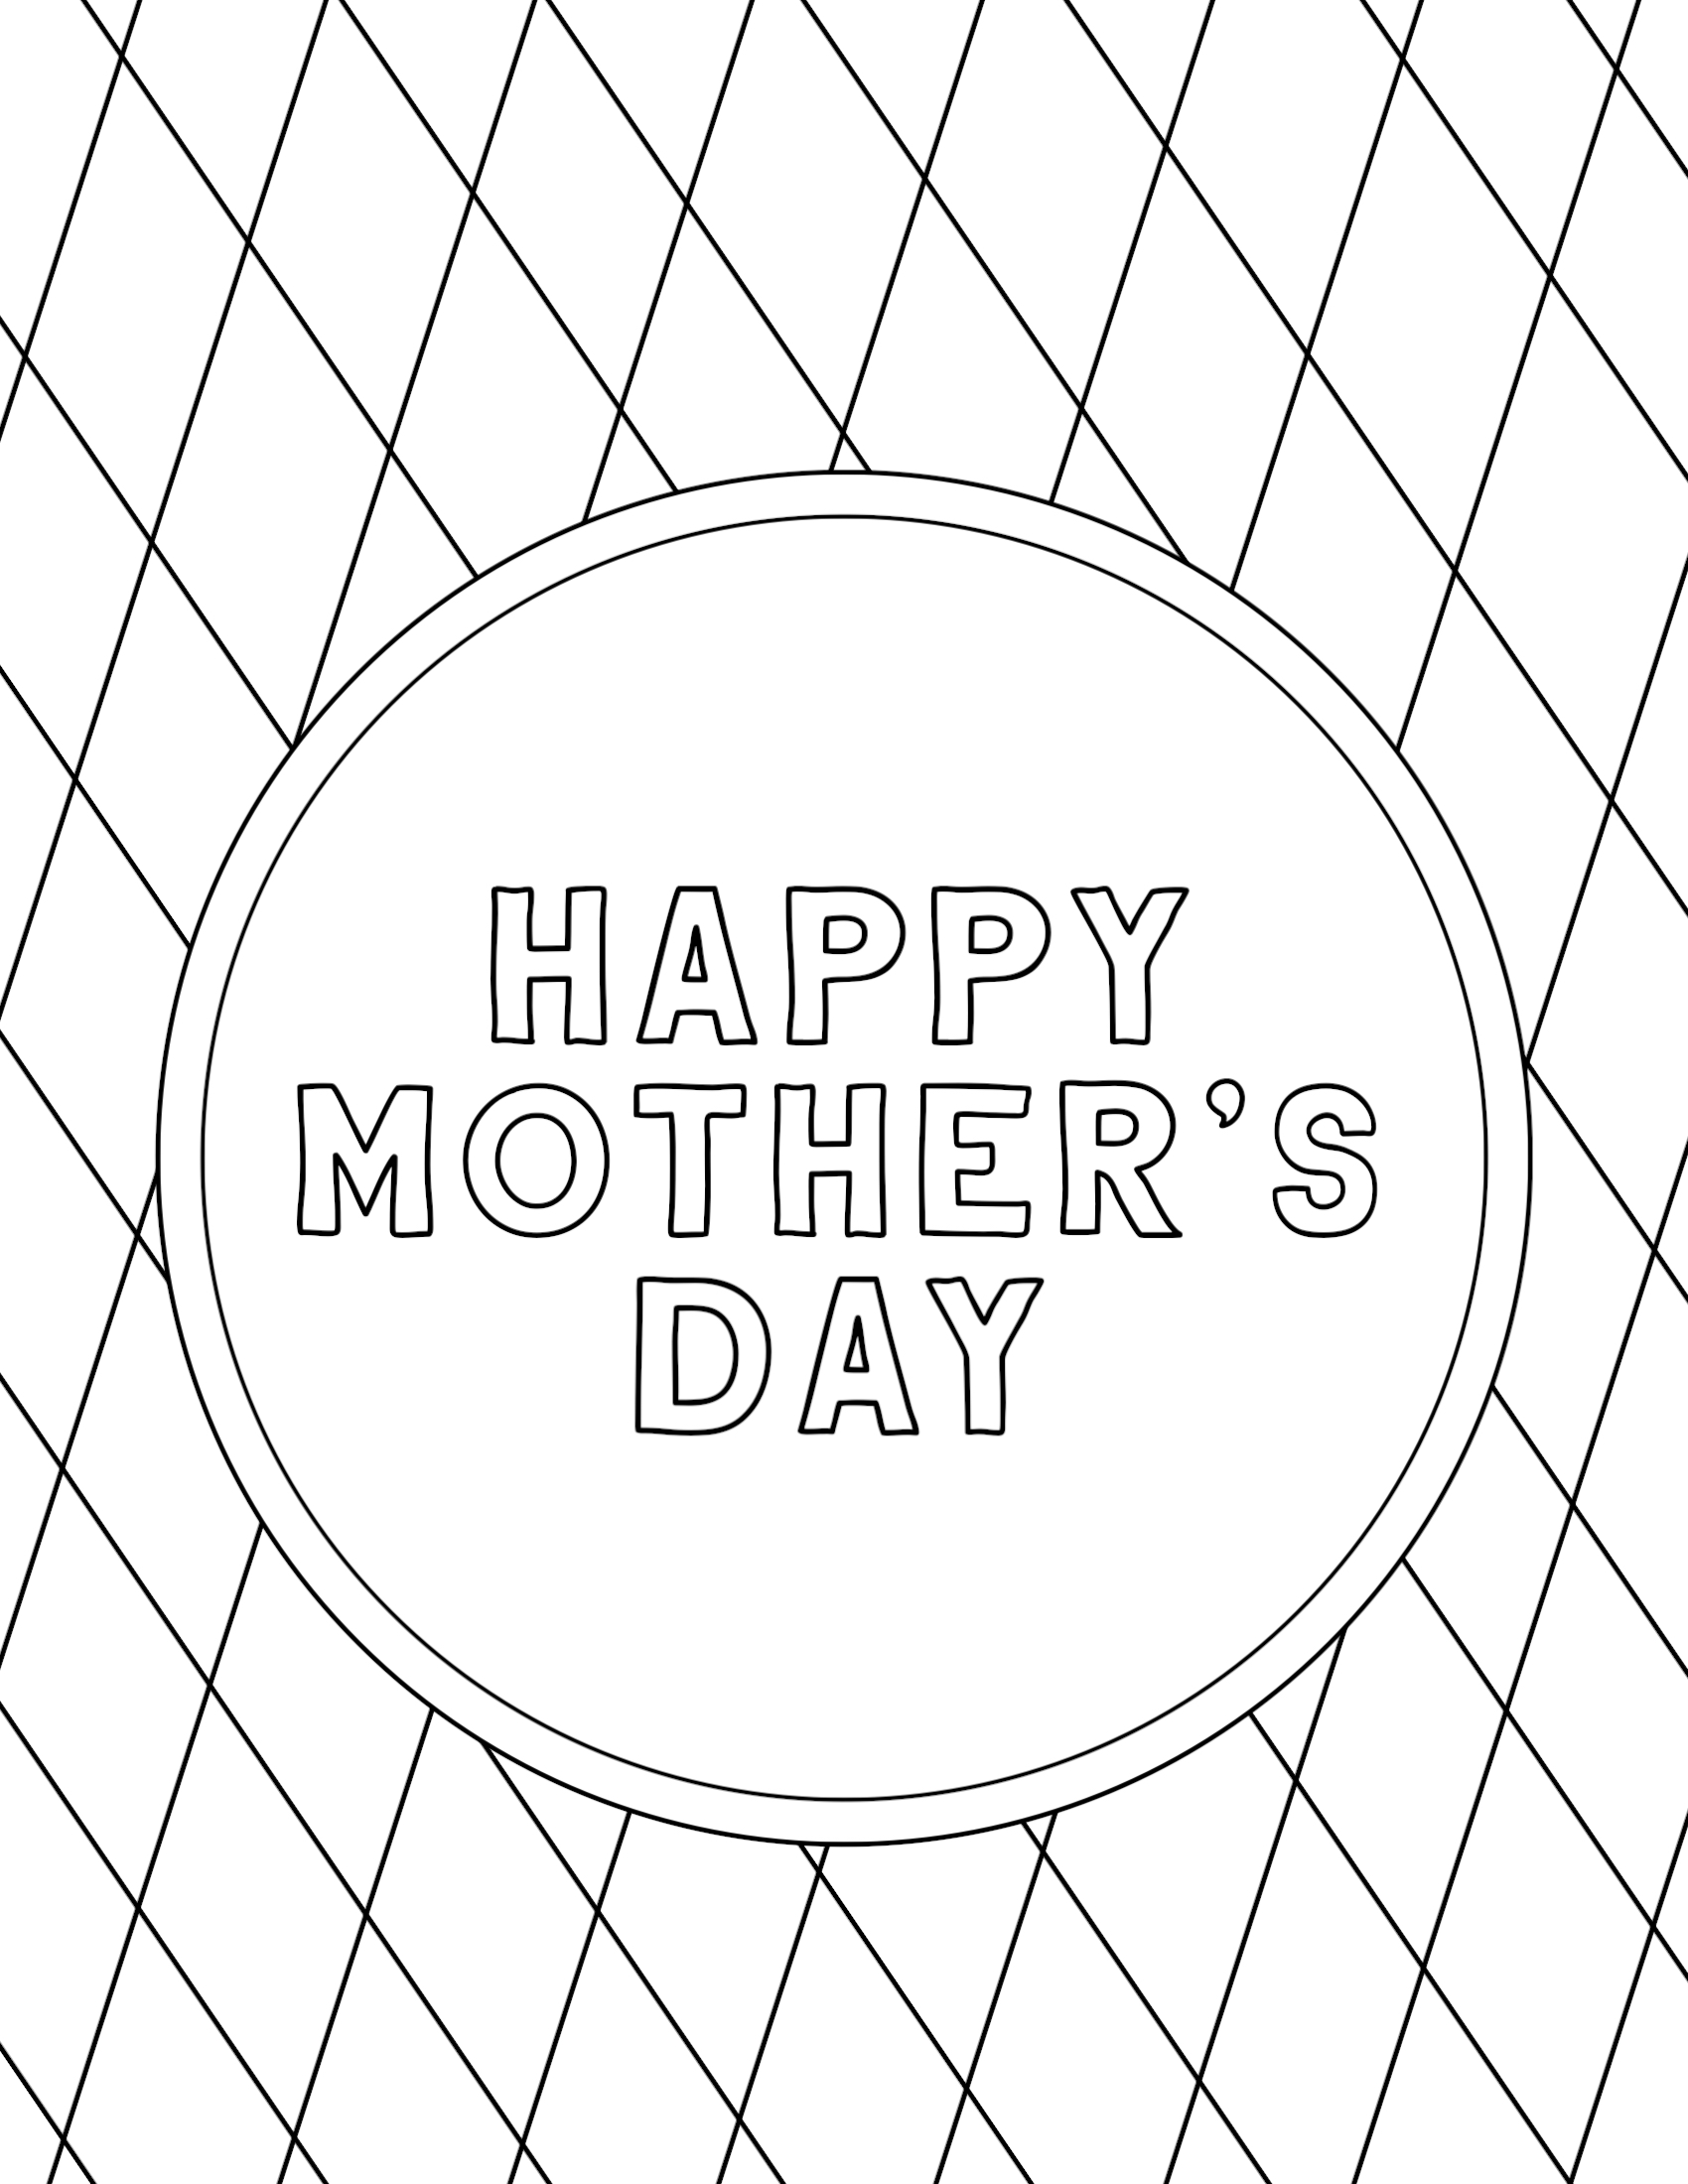 photograph about Printable Mothers Day Coloring Page referred to as Free of charge Printable Moms Working day Coloring Internet pages - Paper Path Layout